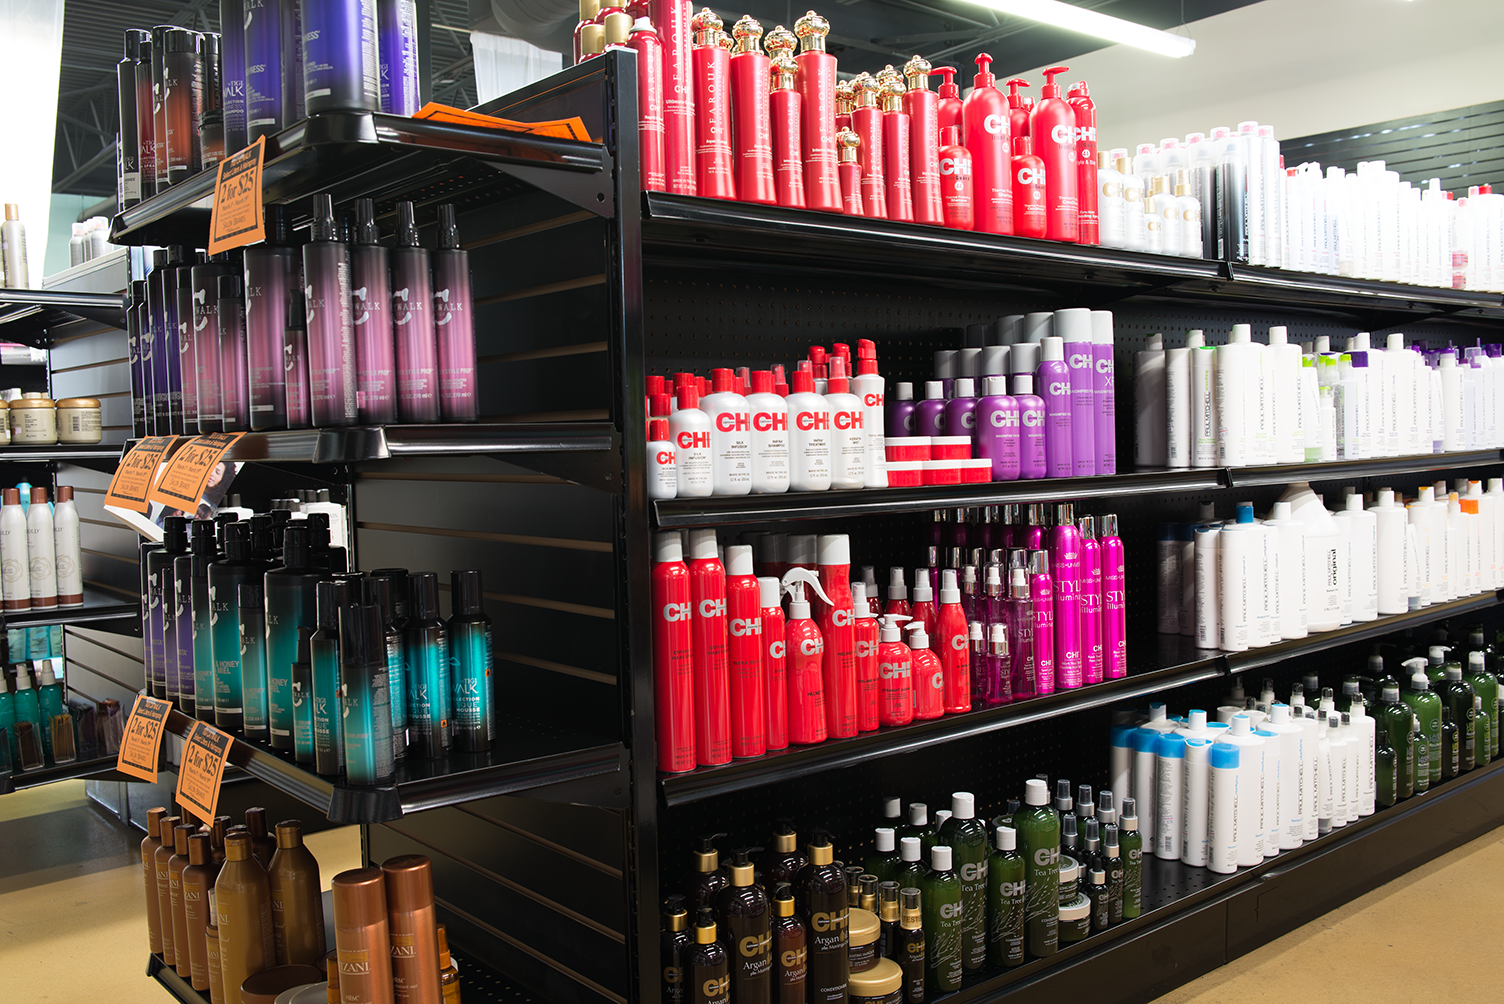 Salon Brands image 16